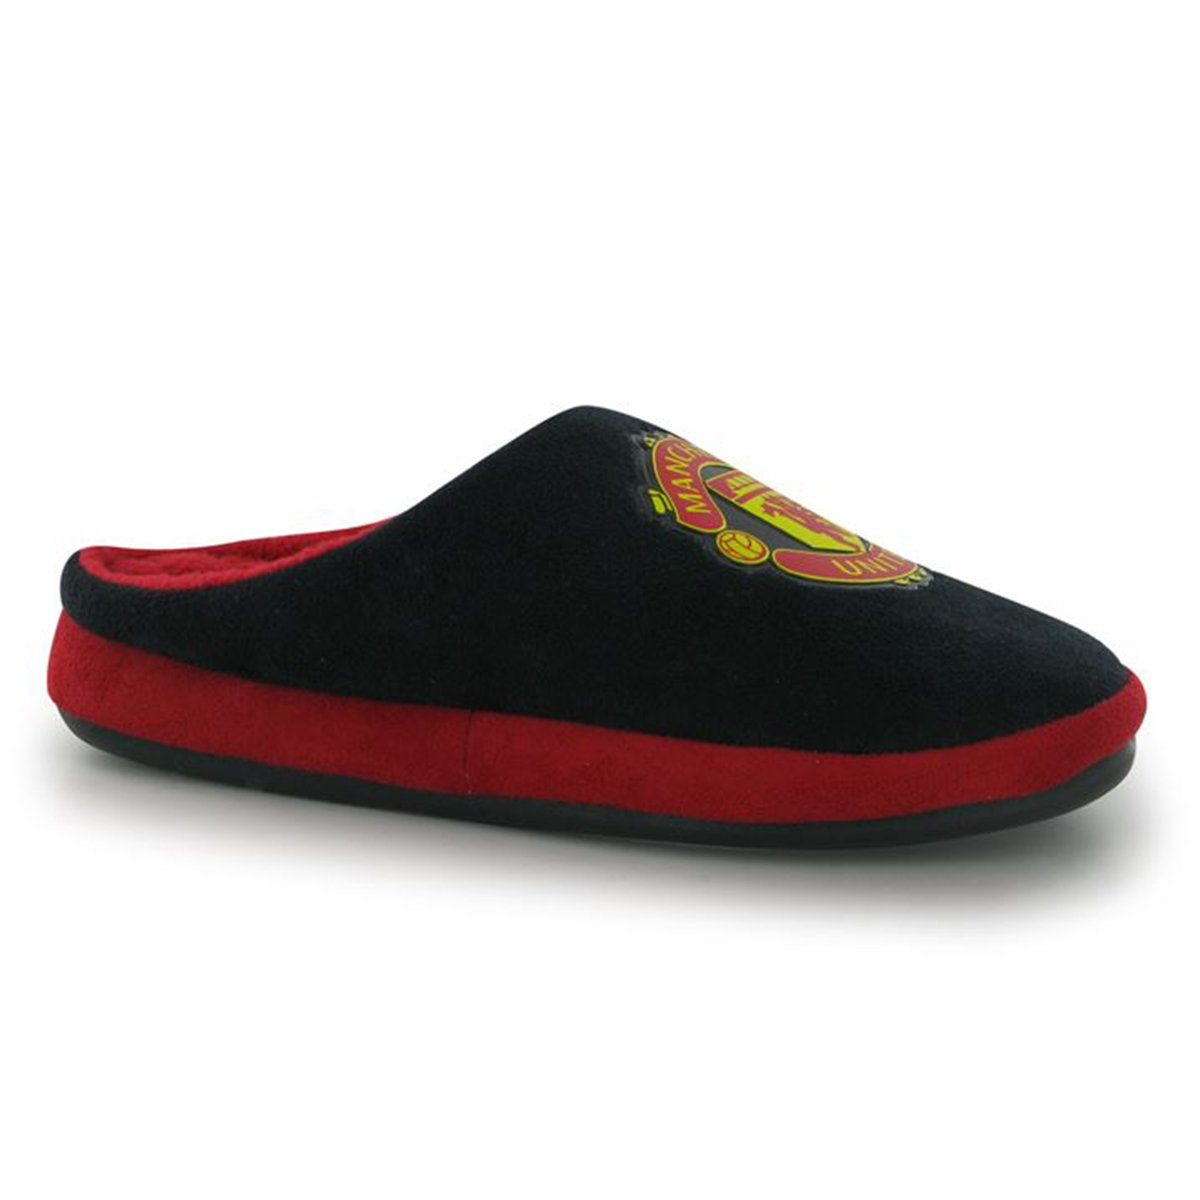 Junior Slippers Manchester United F.C. MAN UTD Team Mules Football Club Crest Supporter Footwear